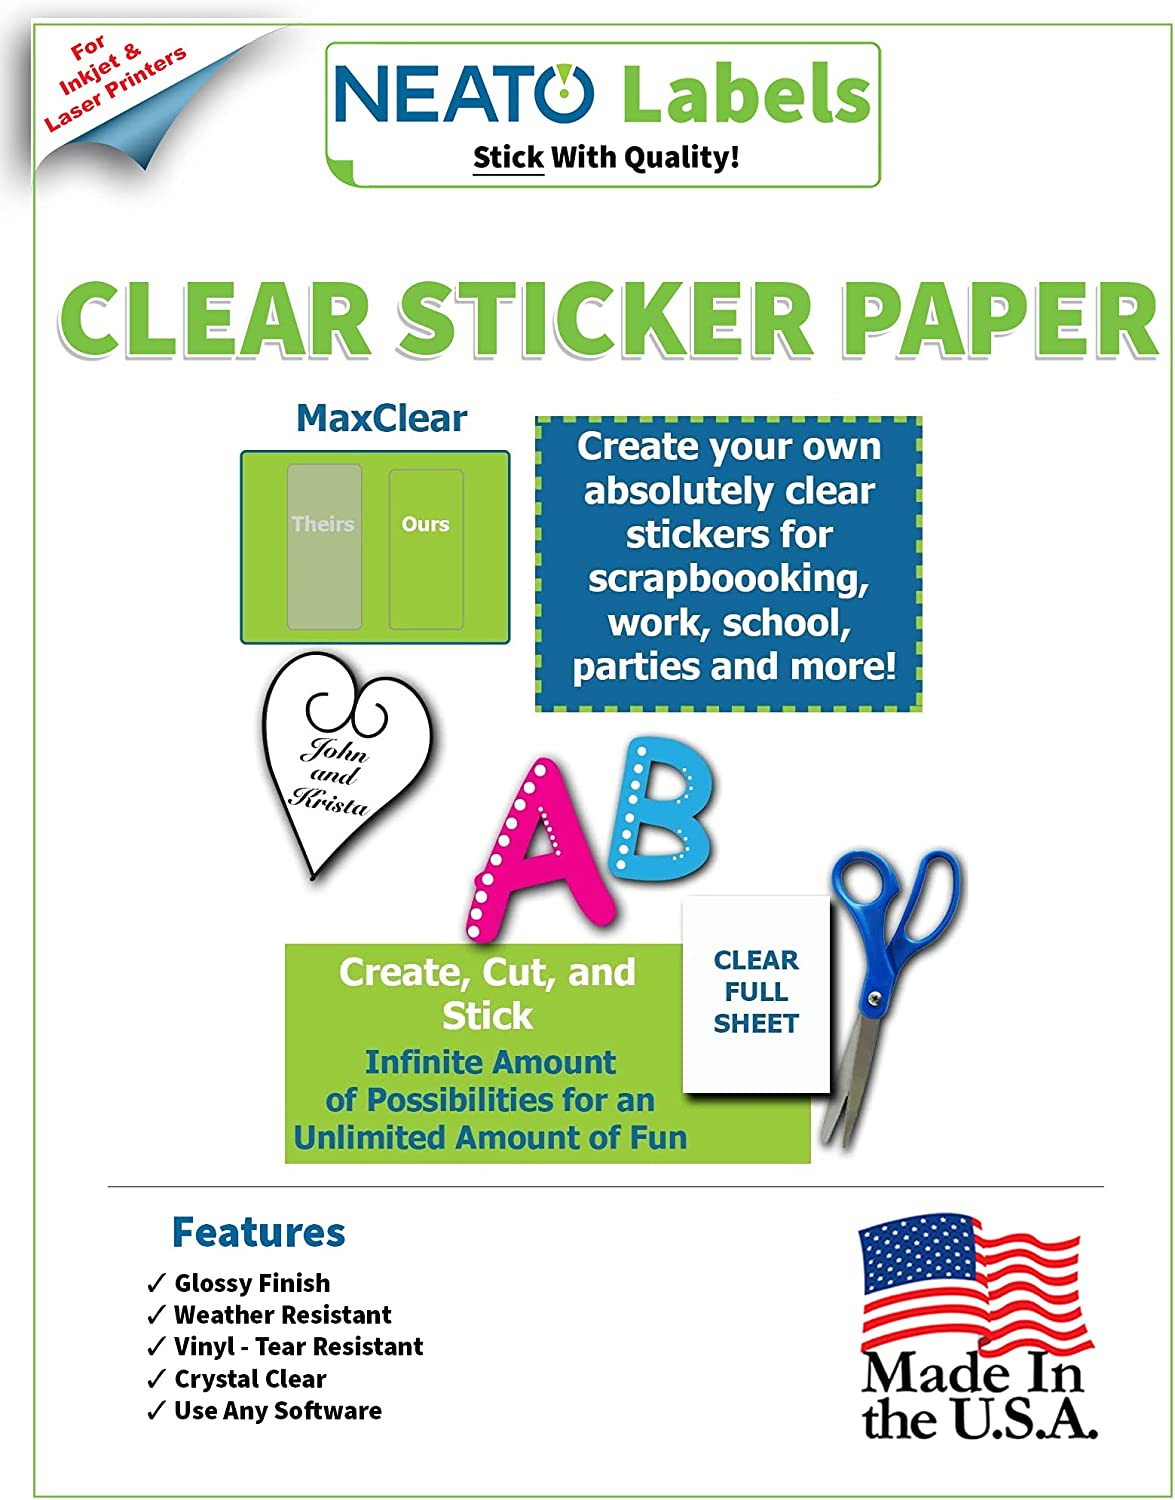 Clear sticker paper for ink jet and laser jet printers